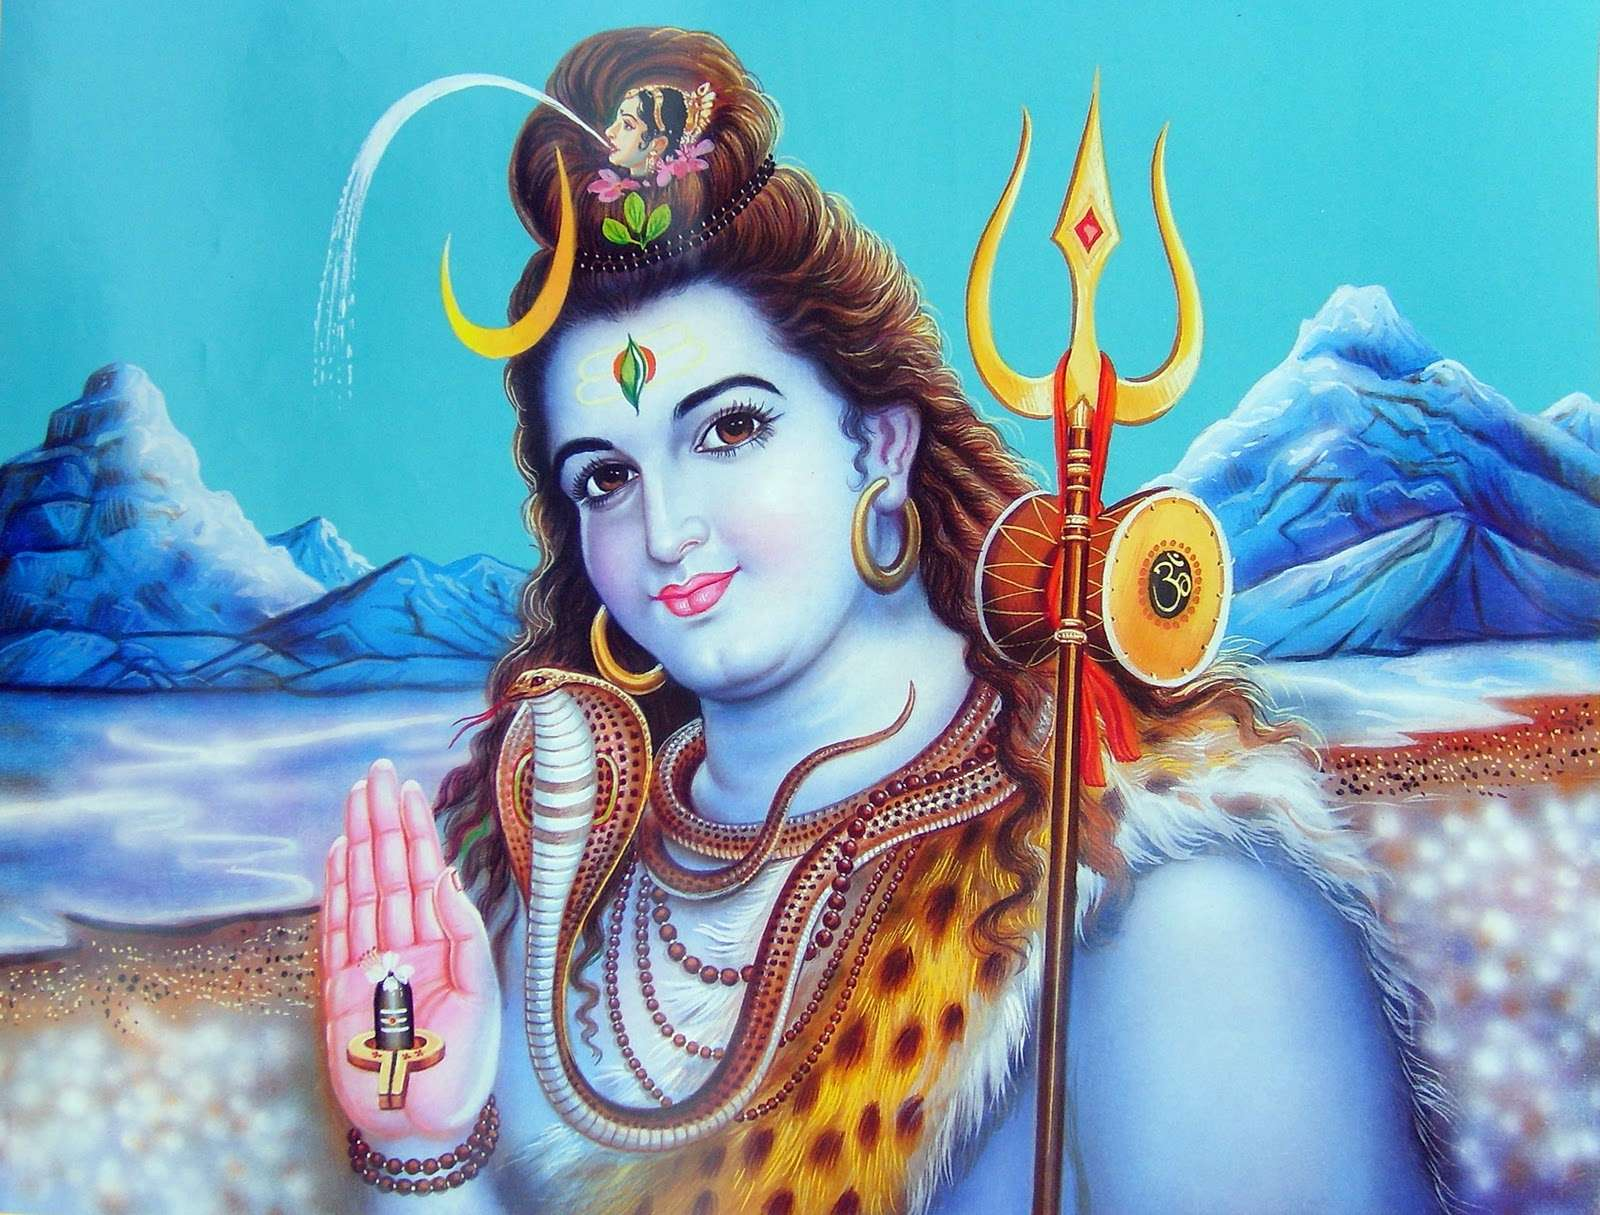 lord shiva wallpapers hd free download for desktop ~ Fine HD Wallpapers - Download Free HD ...